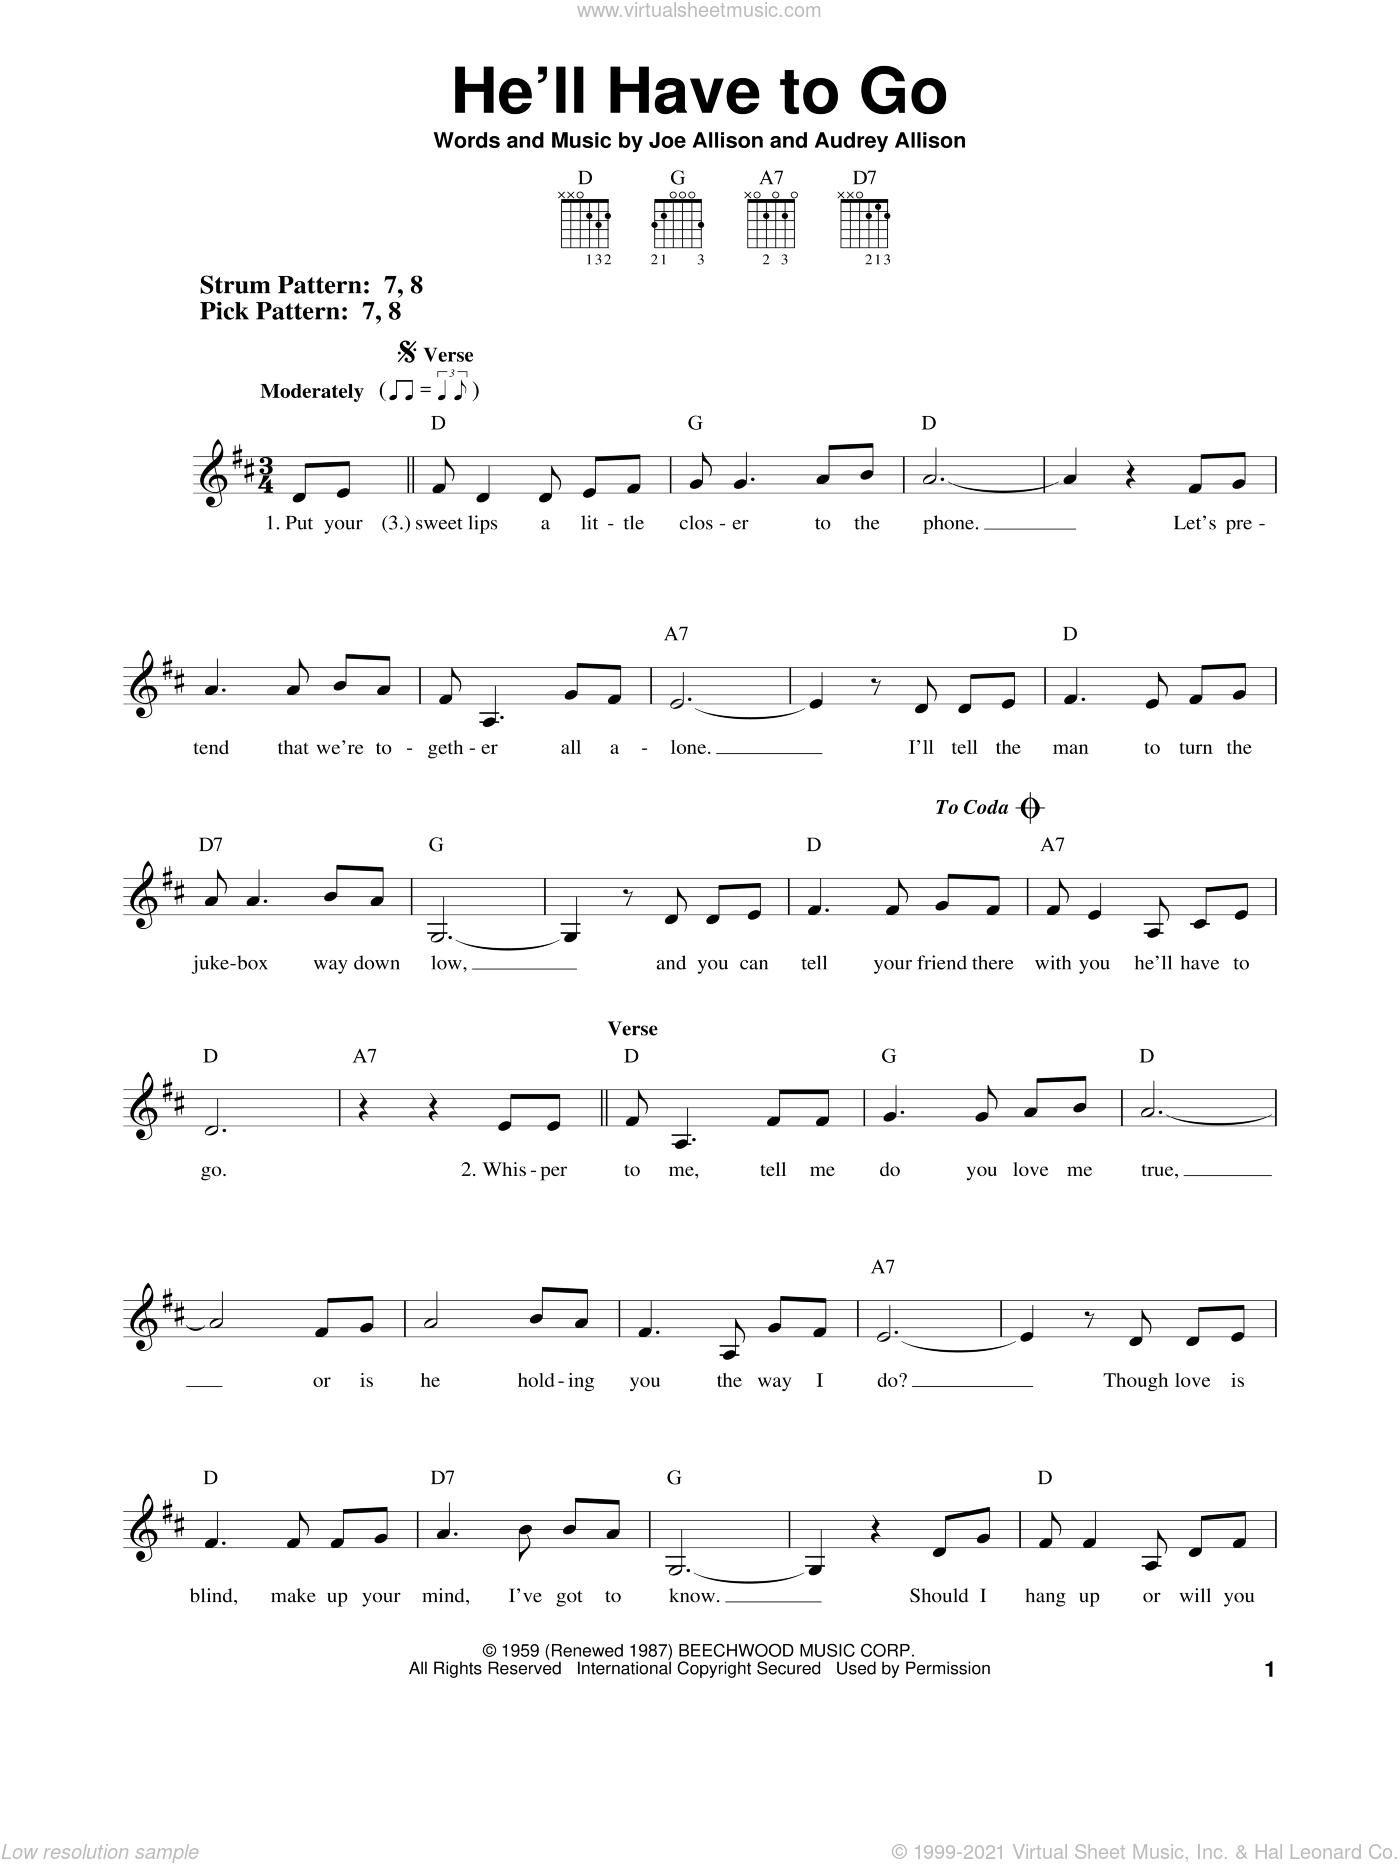 He'll Have To Go sheet music for guitar solo (chords) by Joe Allison